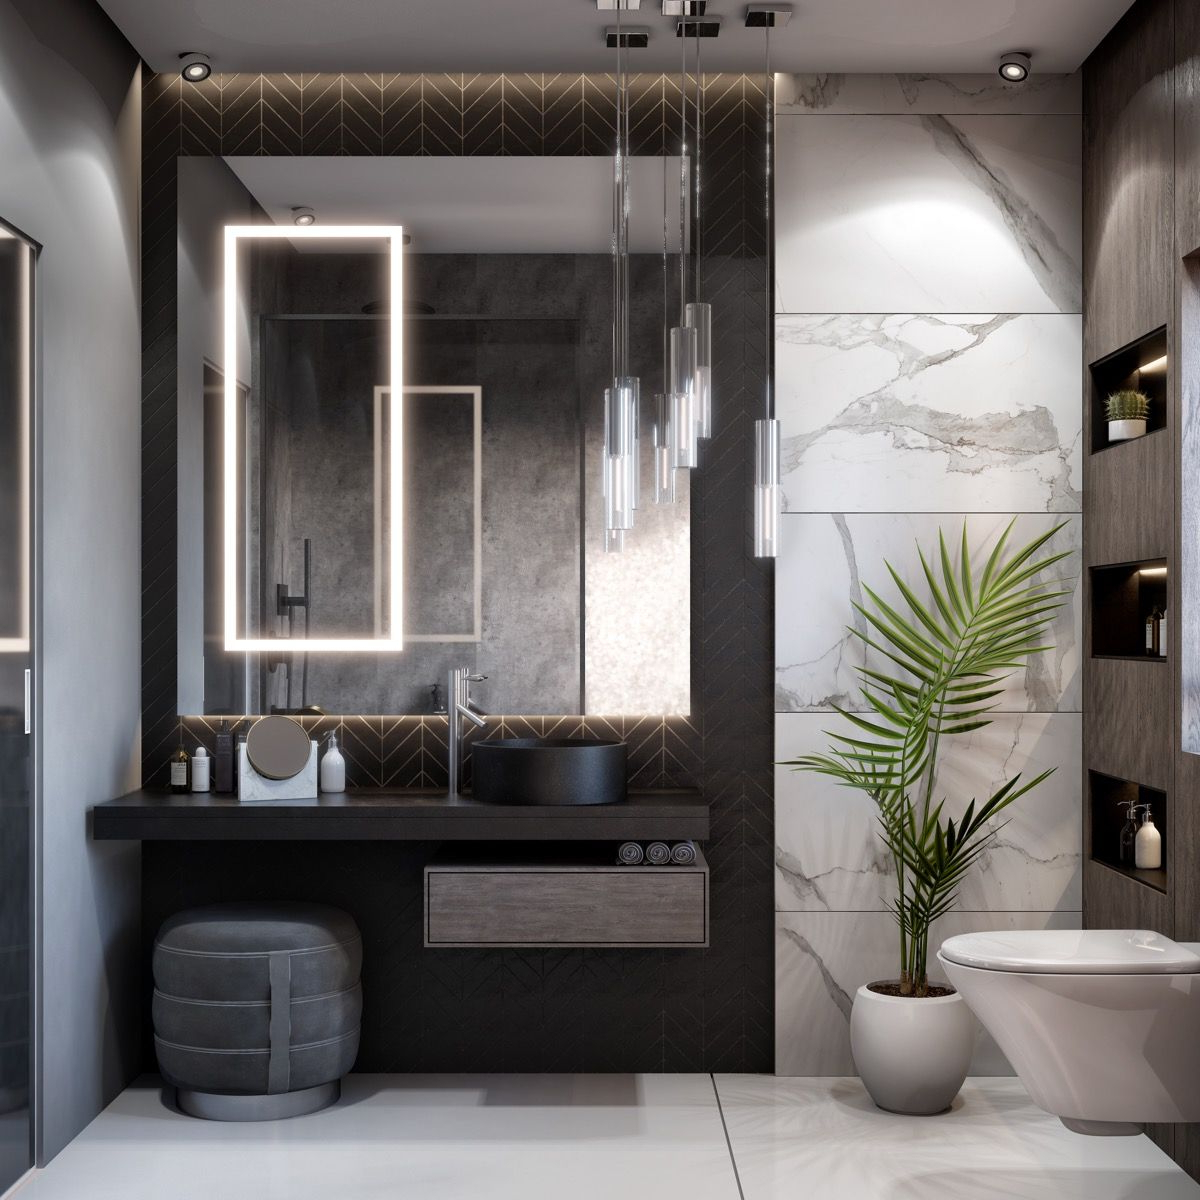 20 Top Small Modern Bathroom Design Ideas Homedecorish